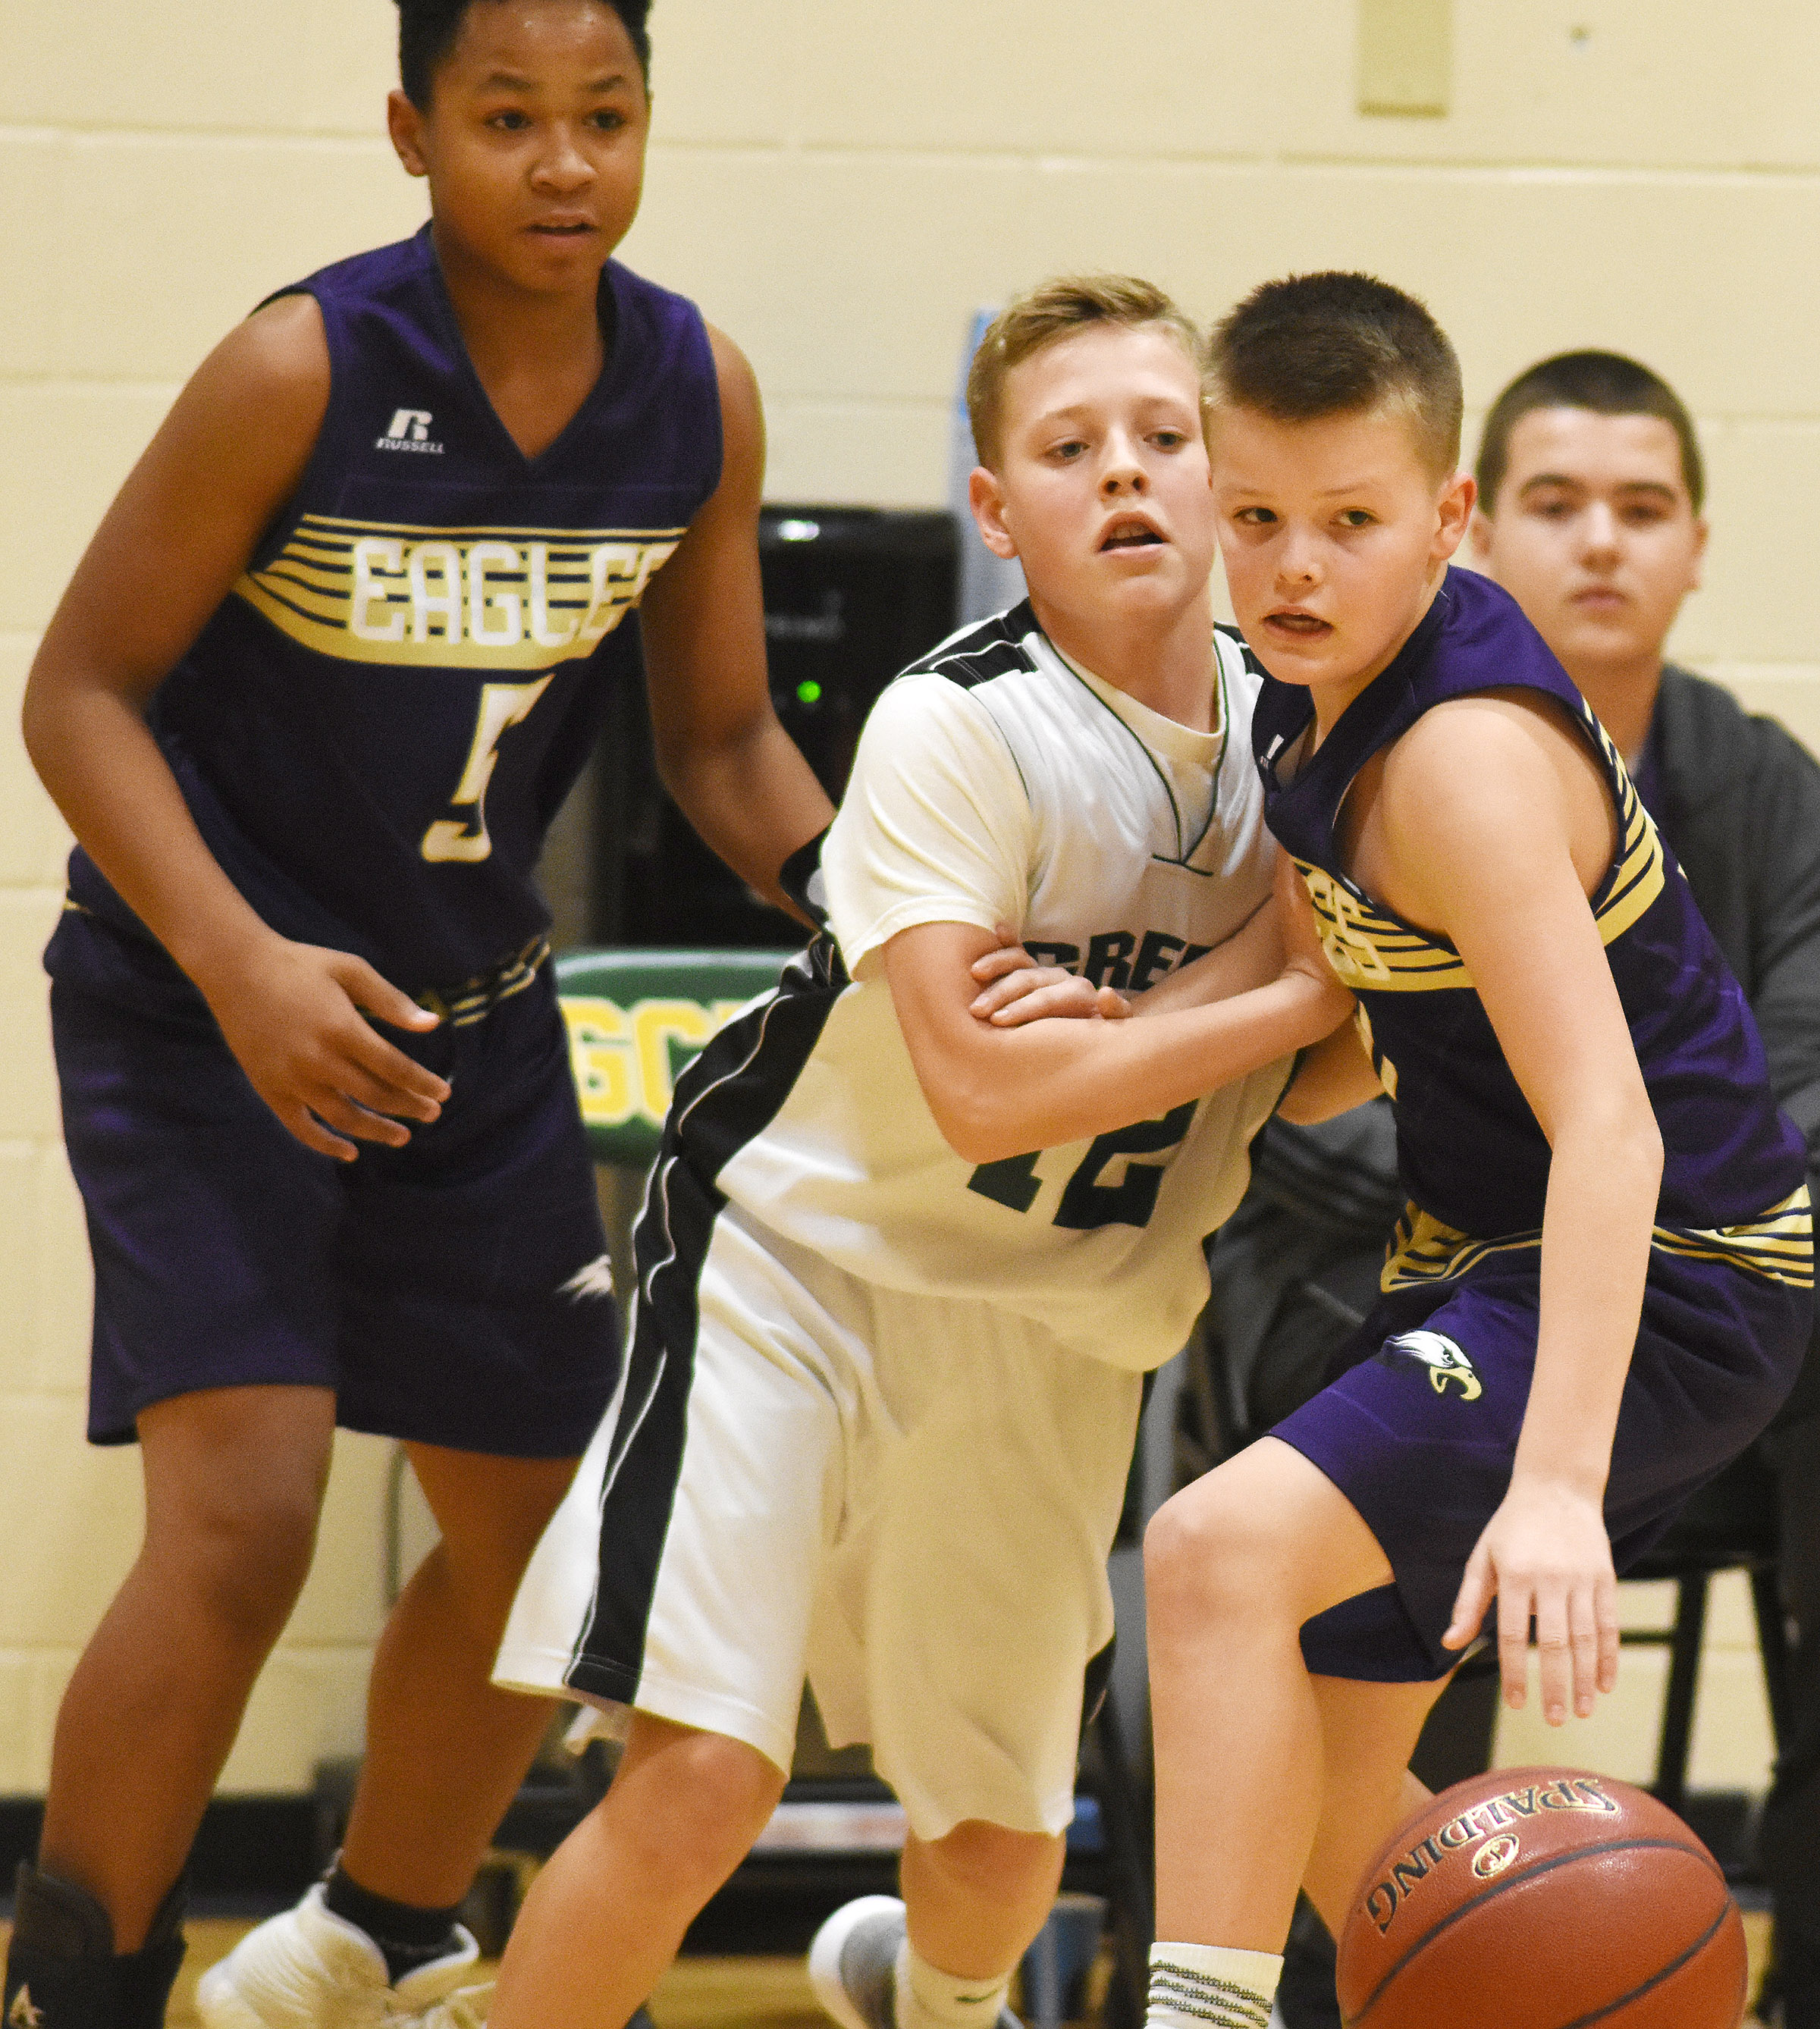 CMS seventh-grader Konner Forbis gets the ball.